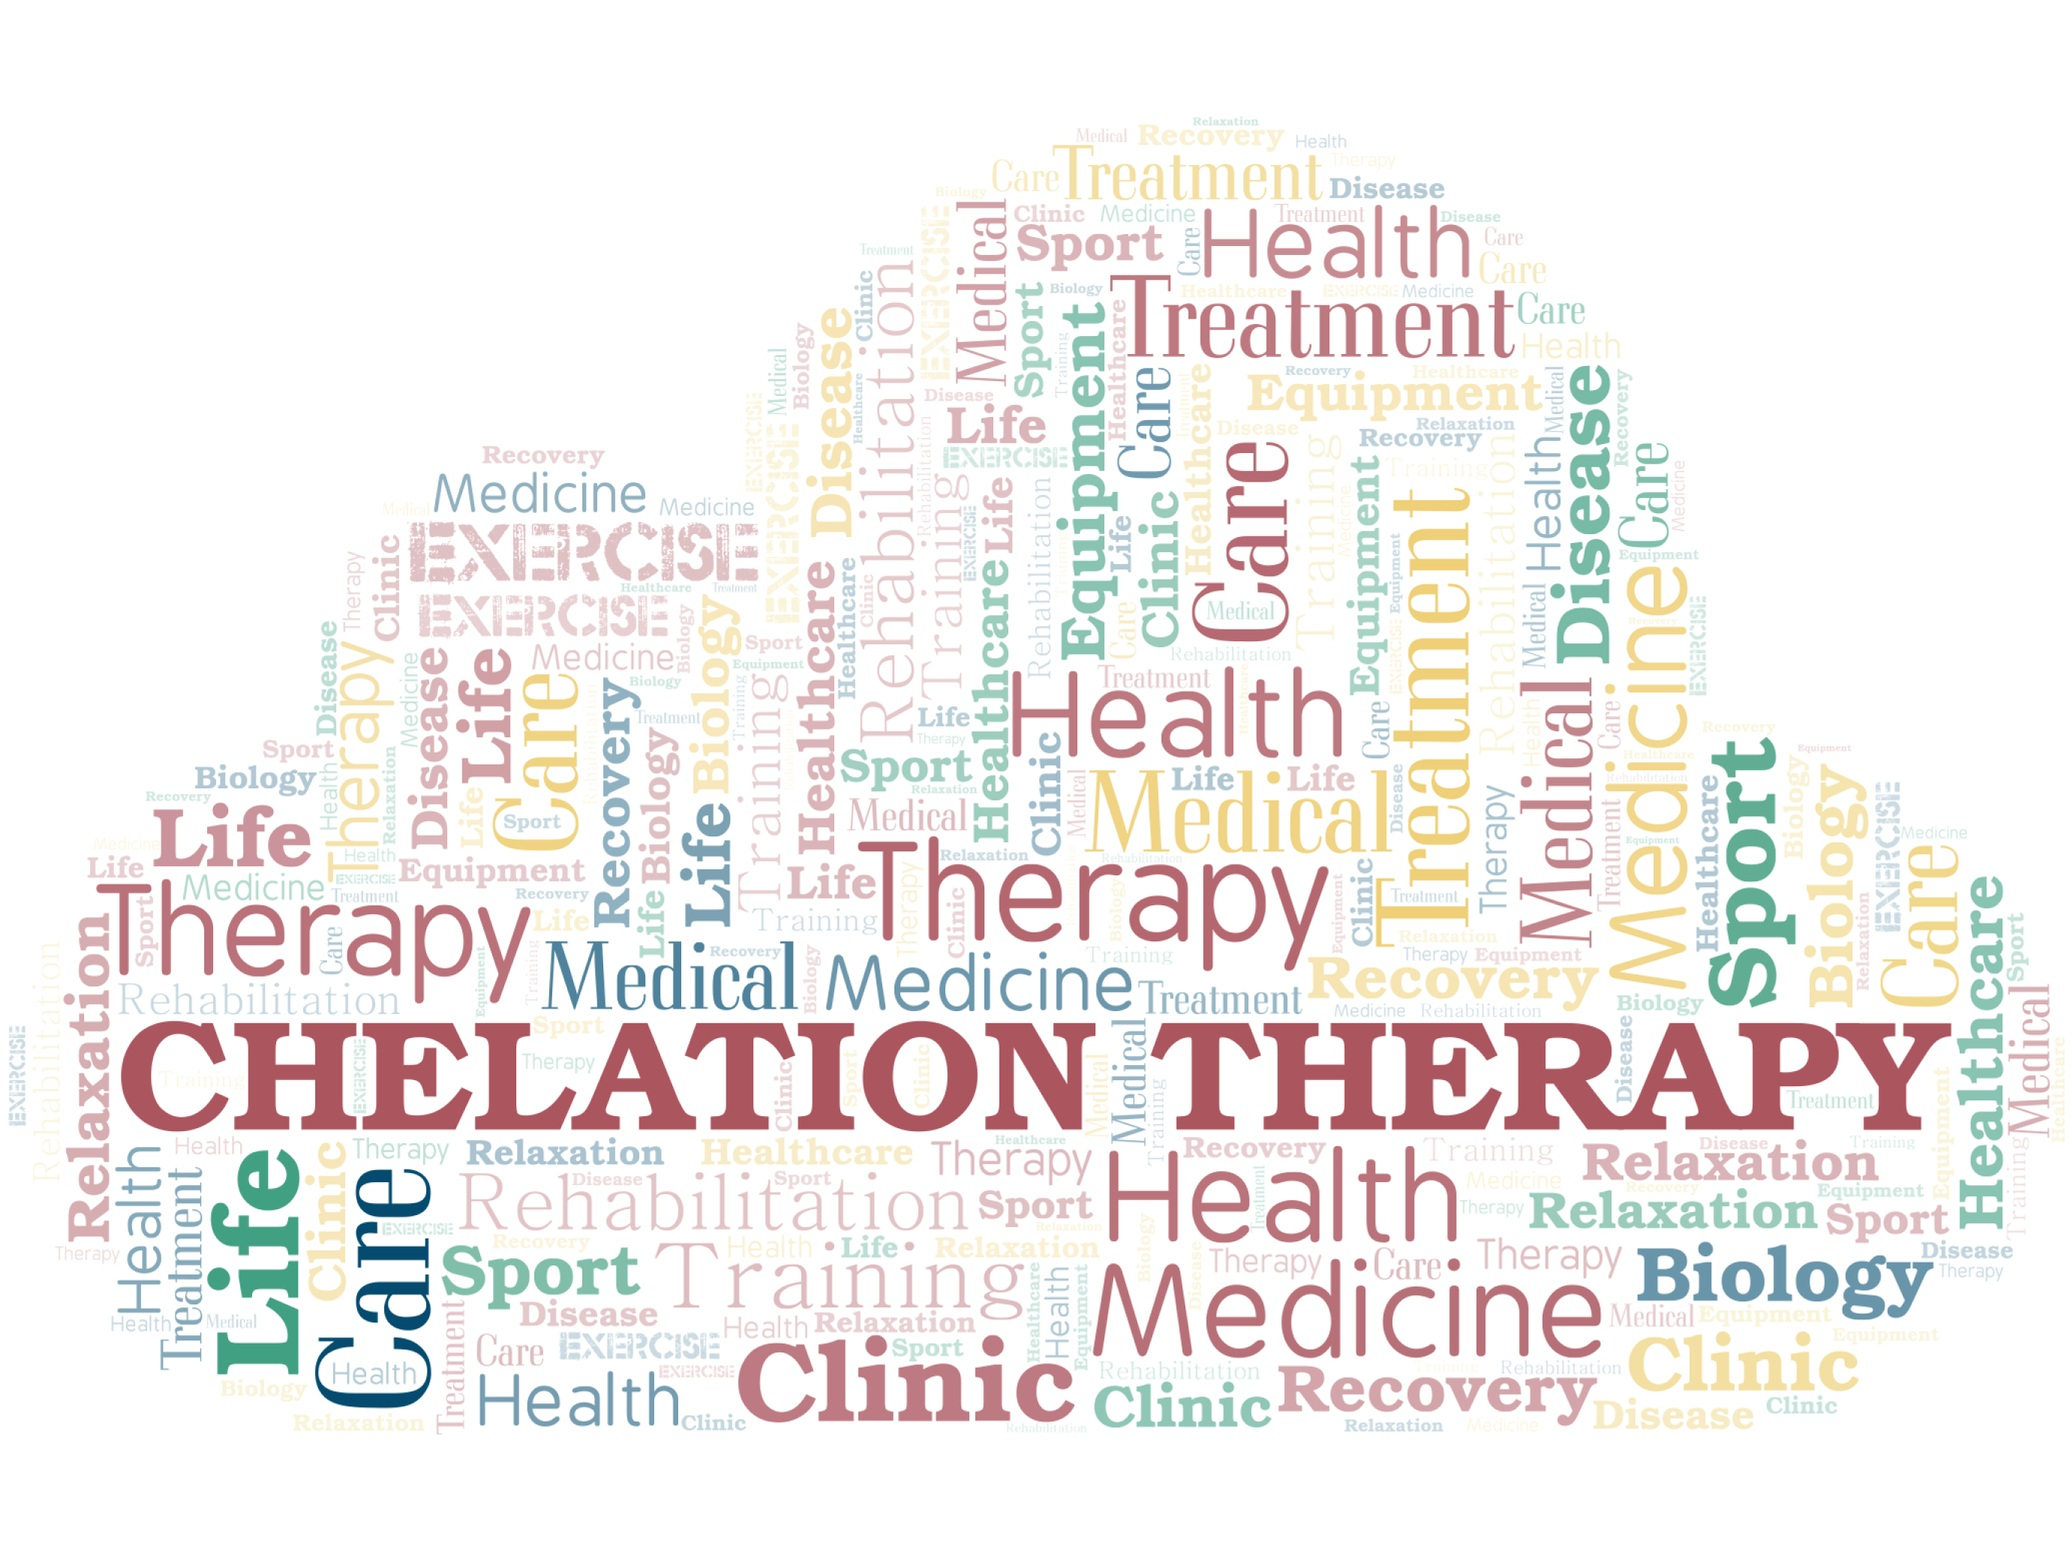 HOW DOES CHELATION THERAPY WORK? - In Chelation therapy, a dose of a medication called Ethylenediaminetetraacetic Acid (EDTA) is delivered into your bloodstream through an IV. This medication seeks out and binds to minerals in your bloodstream. Once the medication binds to the minerals, it creates a compound that leaves your body in your urine.